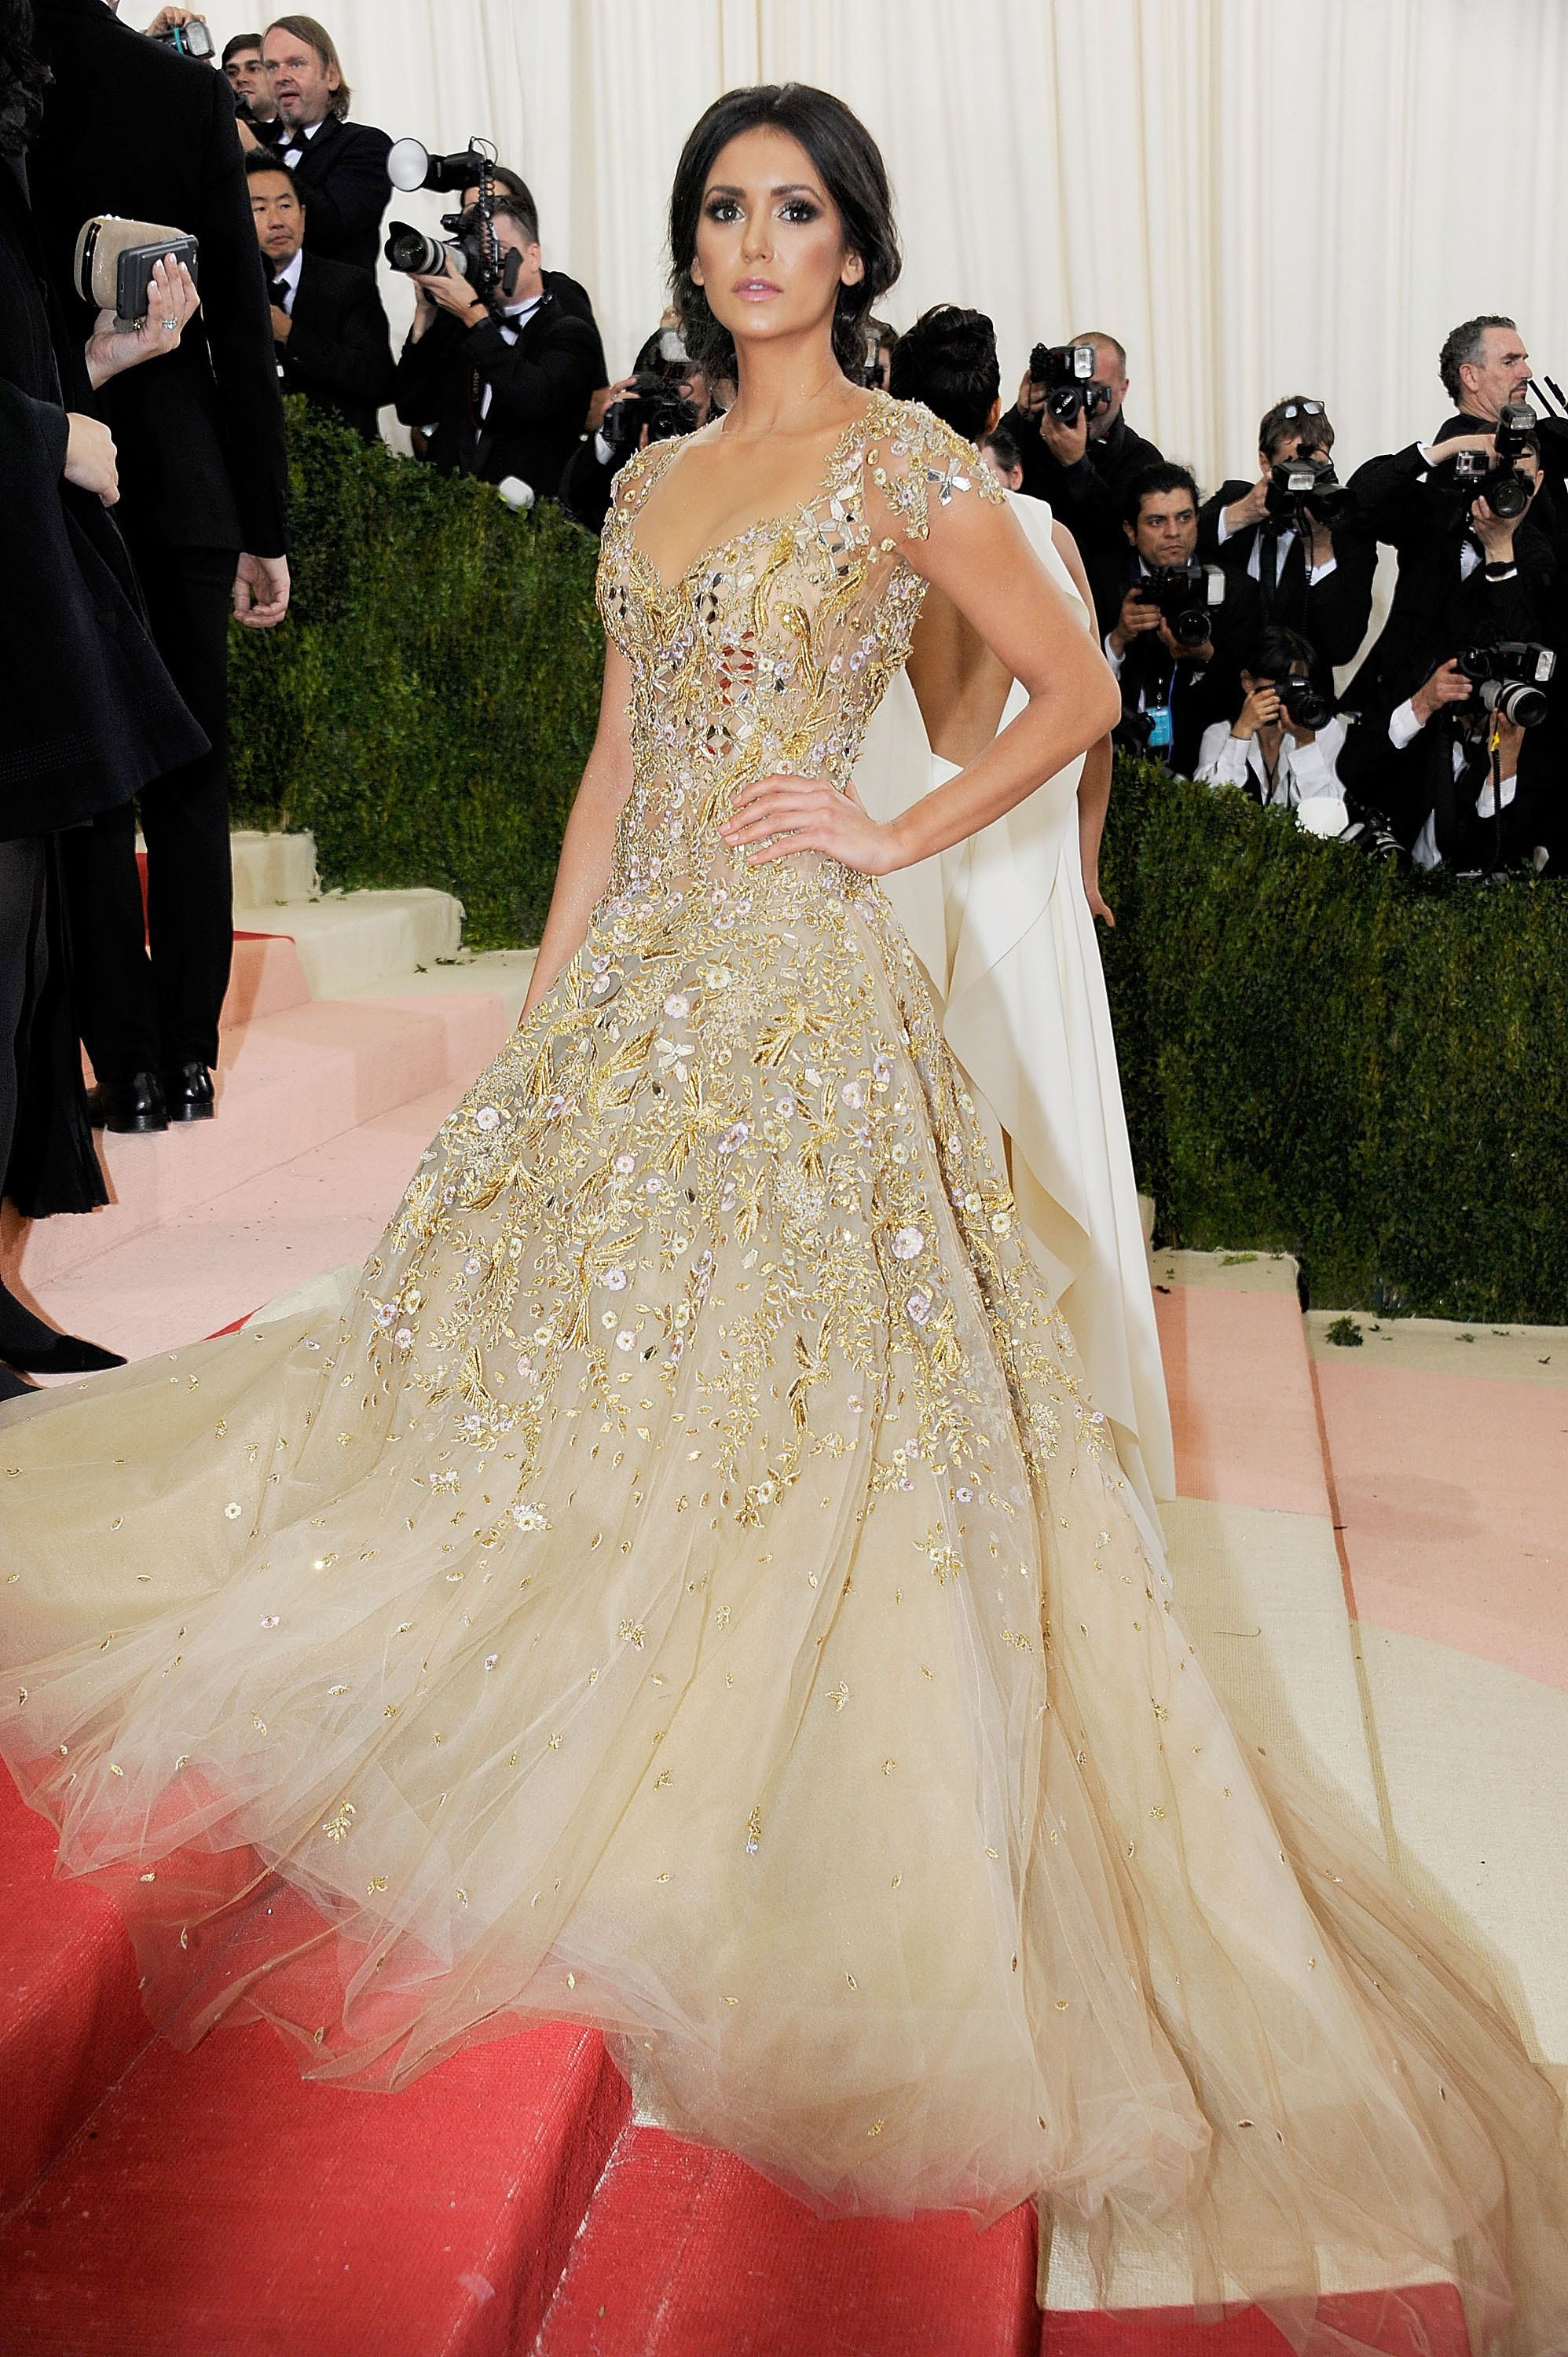 Nina Dobrev at the 2016 met gala wearing Marchesa. #GoldGown #Marchesa  #MetBall #redcarpet